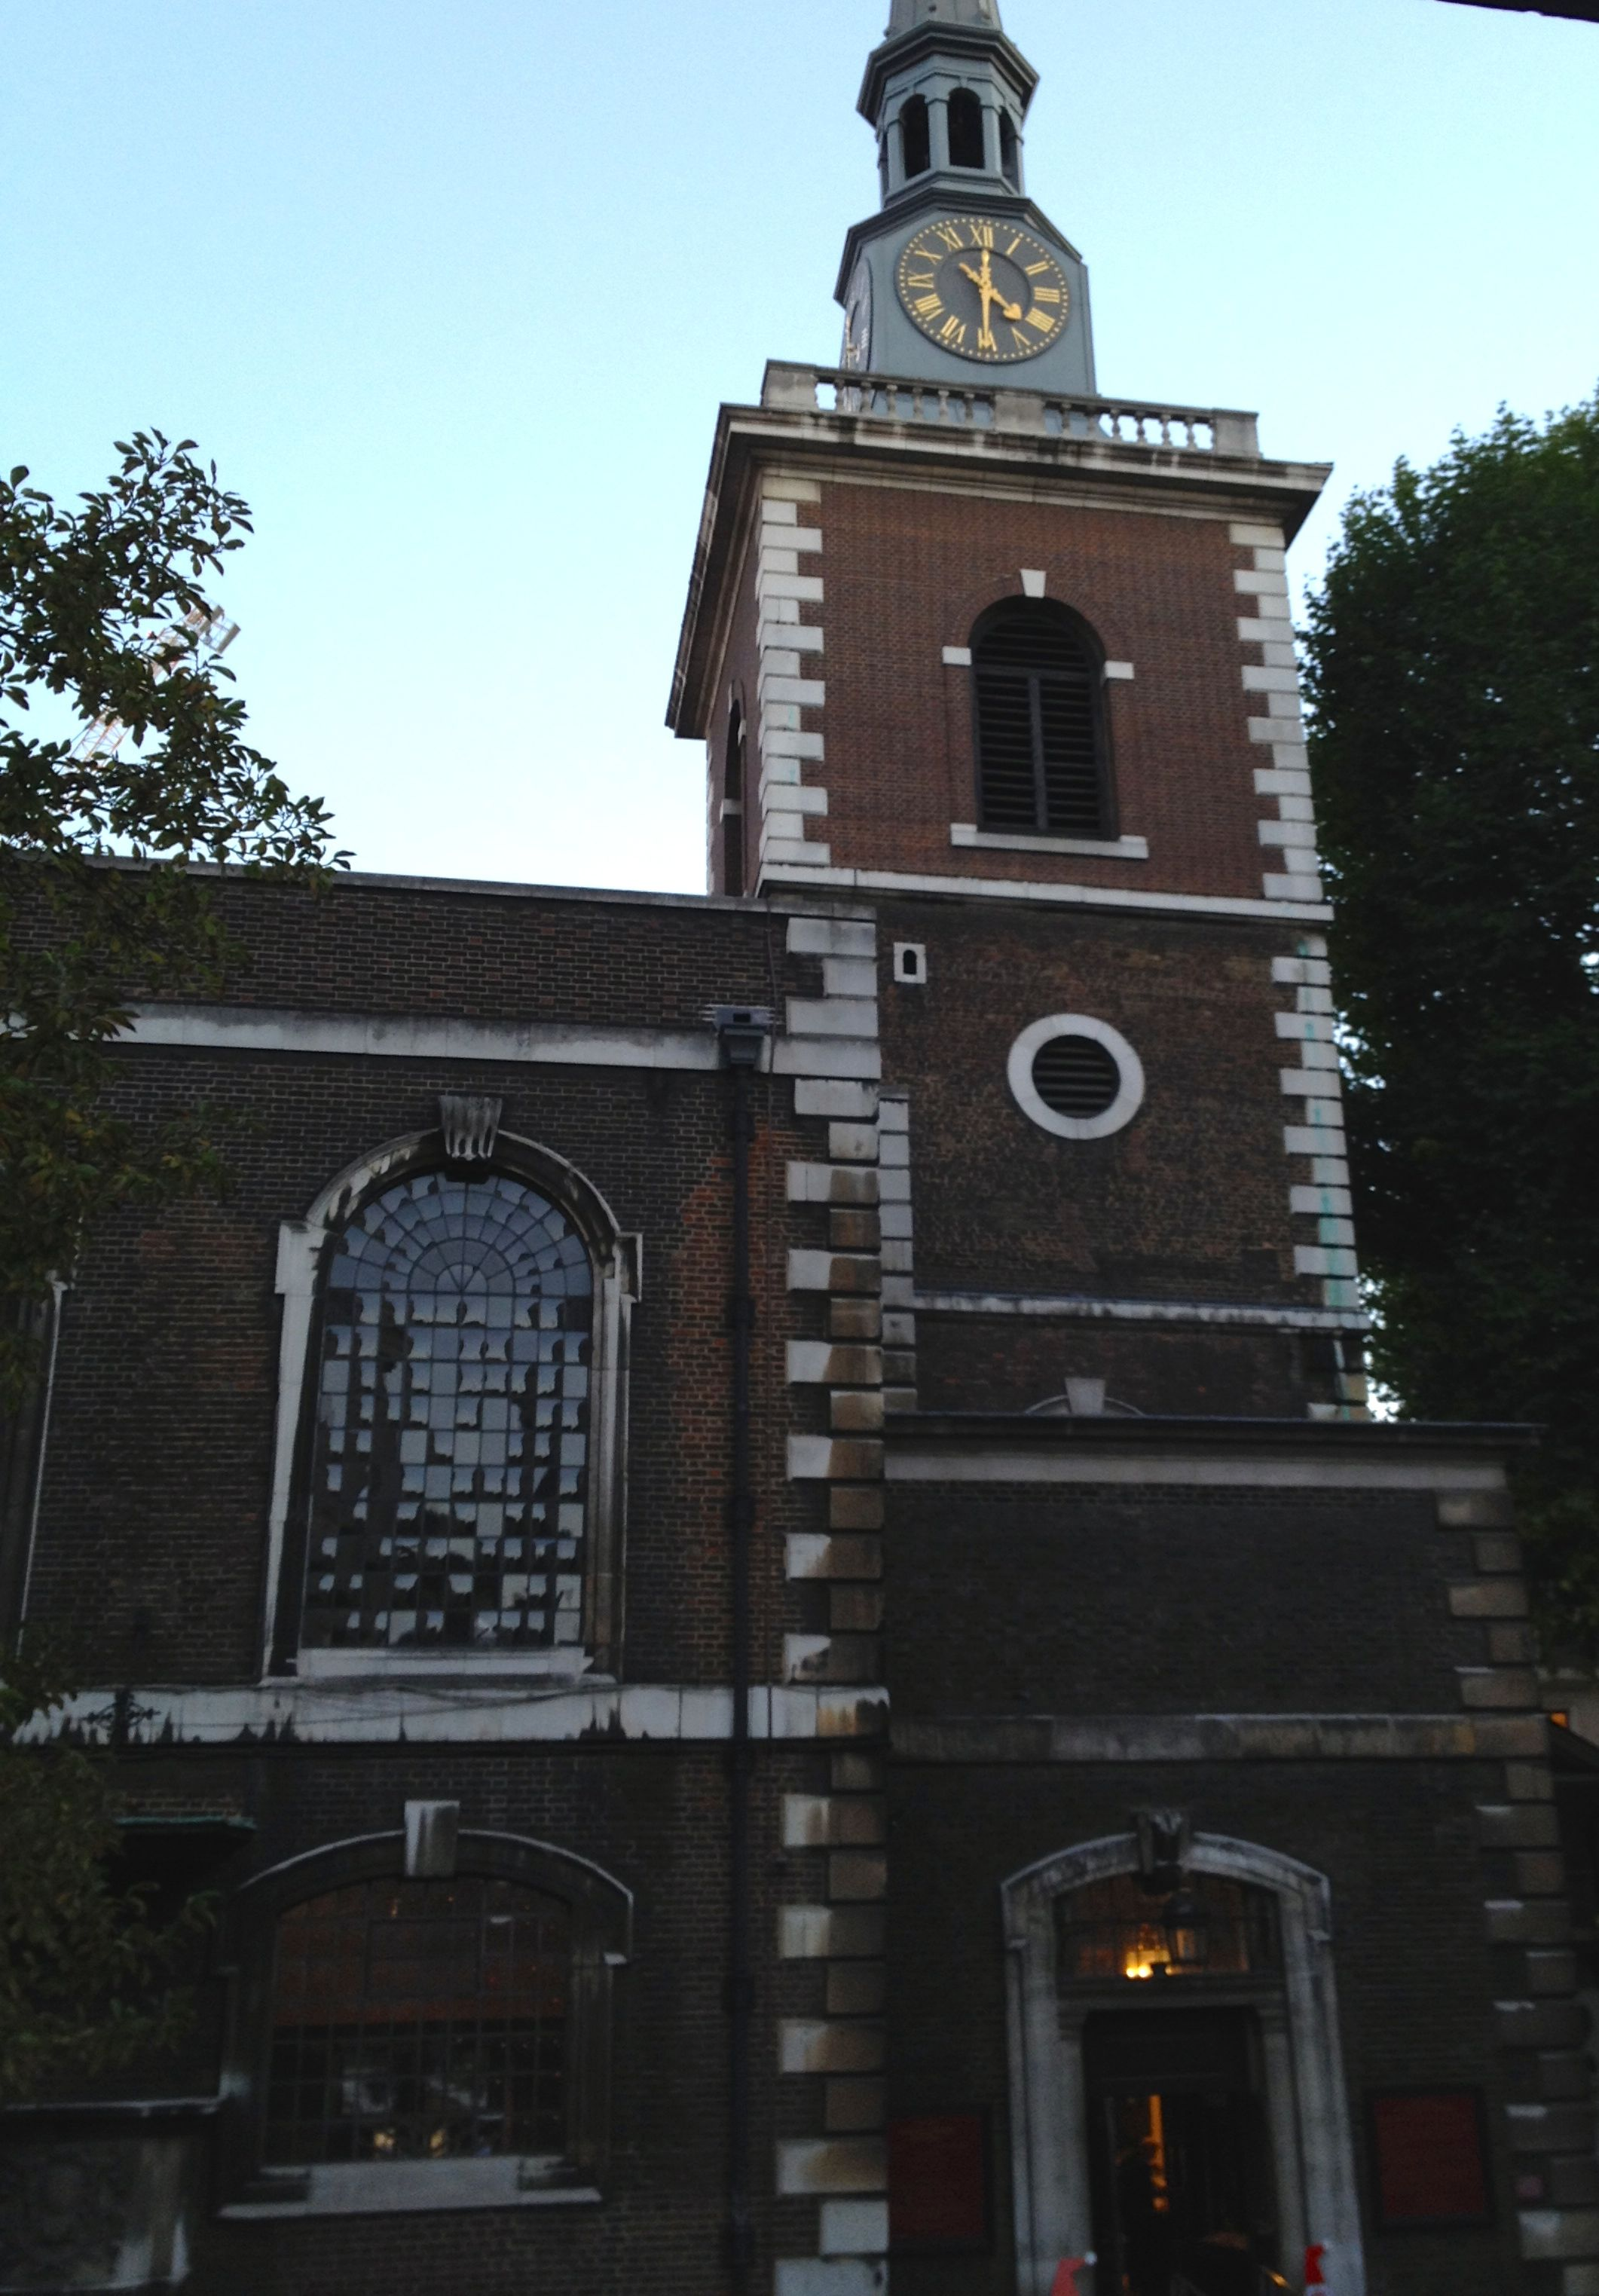 St. James' Church on Piccadilly